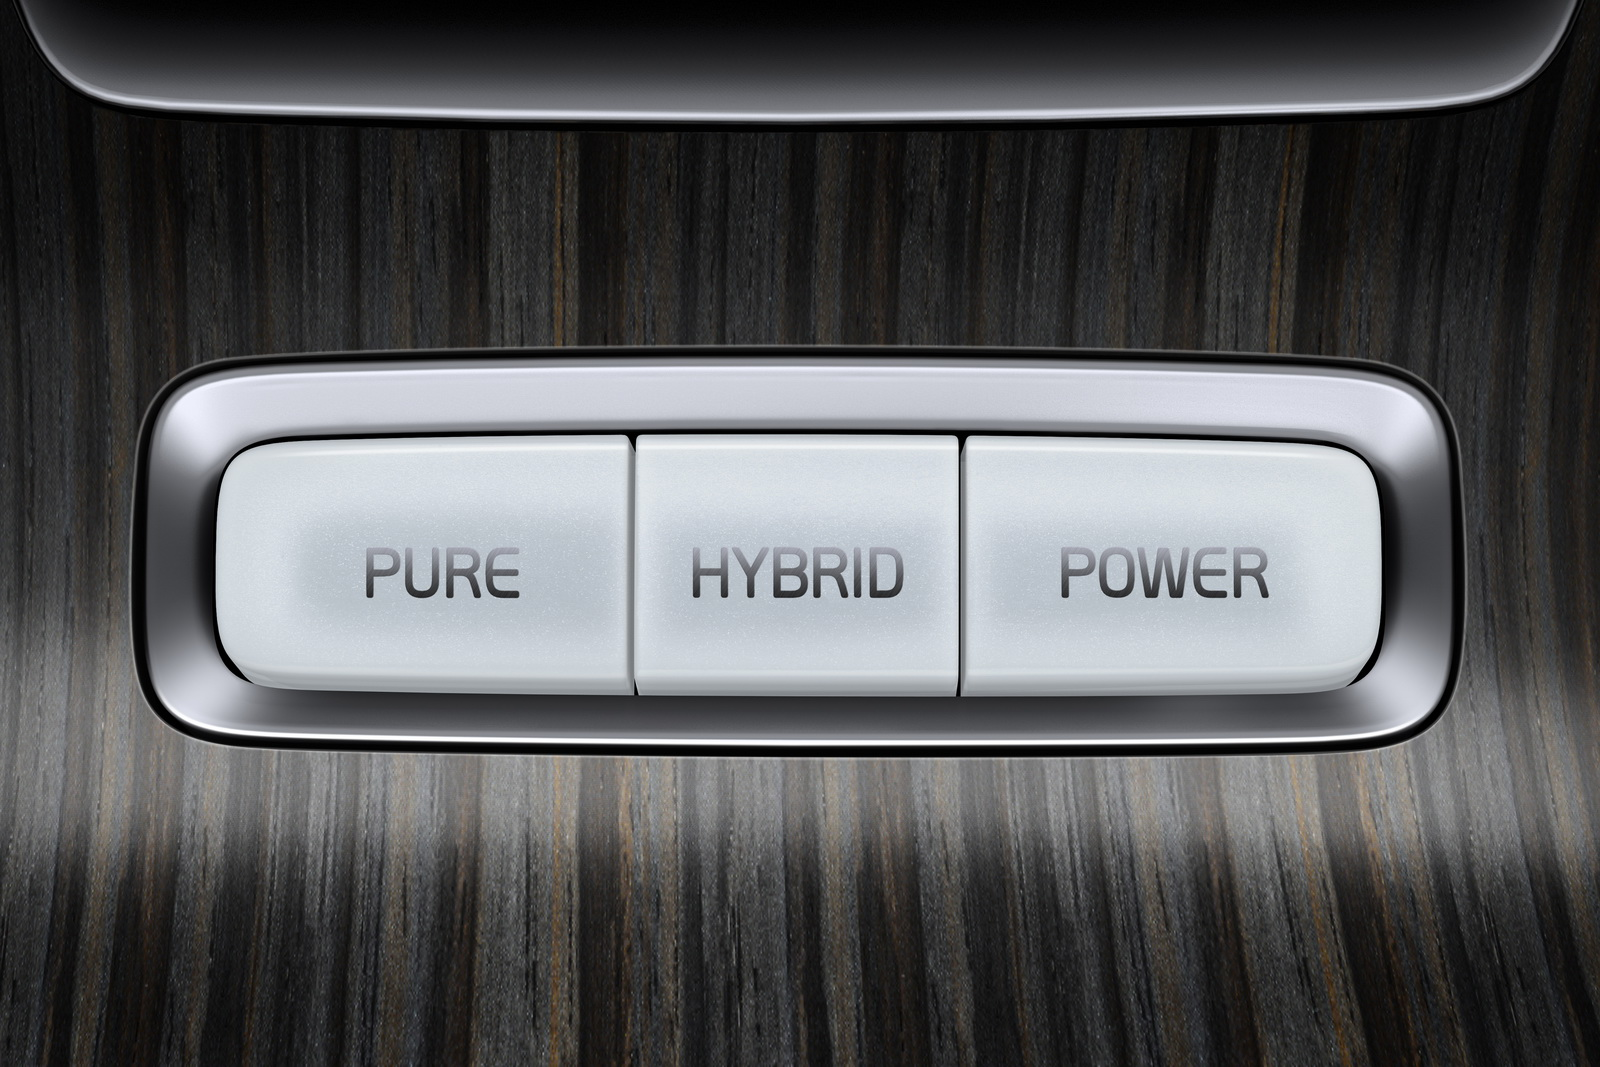 Volvo V60 Plug-in Hybrid: Switch to Pure